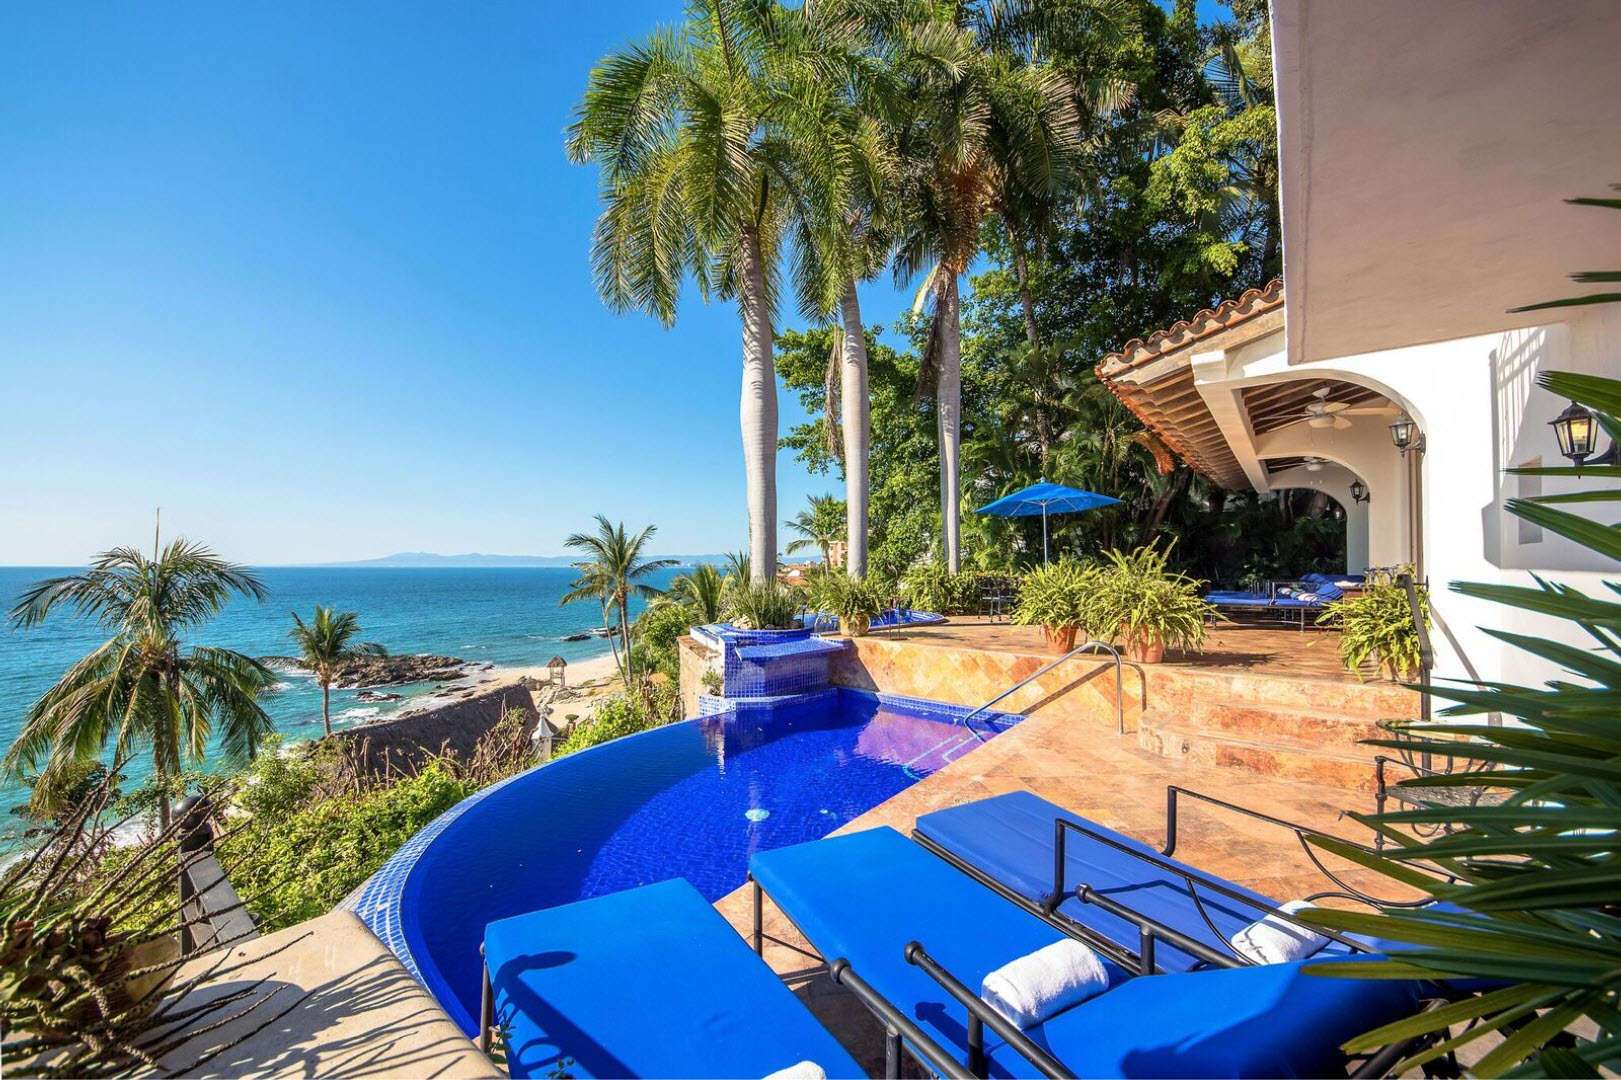 Luxury vacation rentals mexico - Puerto vallarta - Conchas chinas - No location 4 - Villa Vista de Aves - Image 1/19